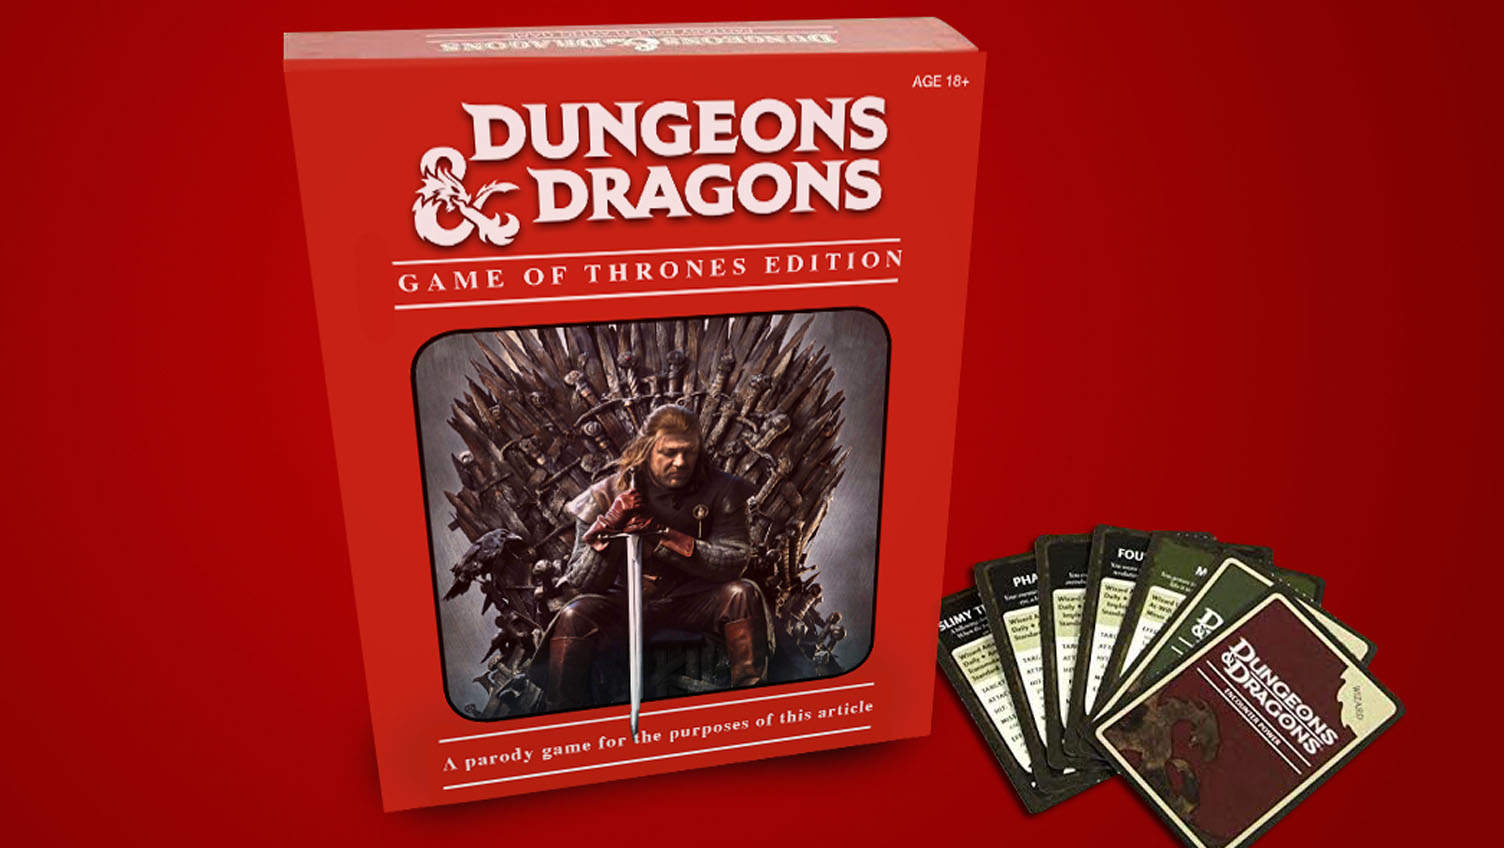 Play Out Your Own Game Of Thrones Stories With These Dungeons Dragons Character Sheets Gamesradar